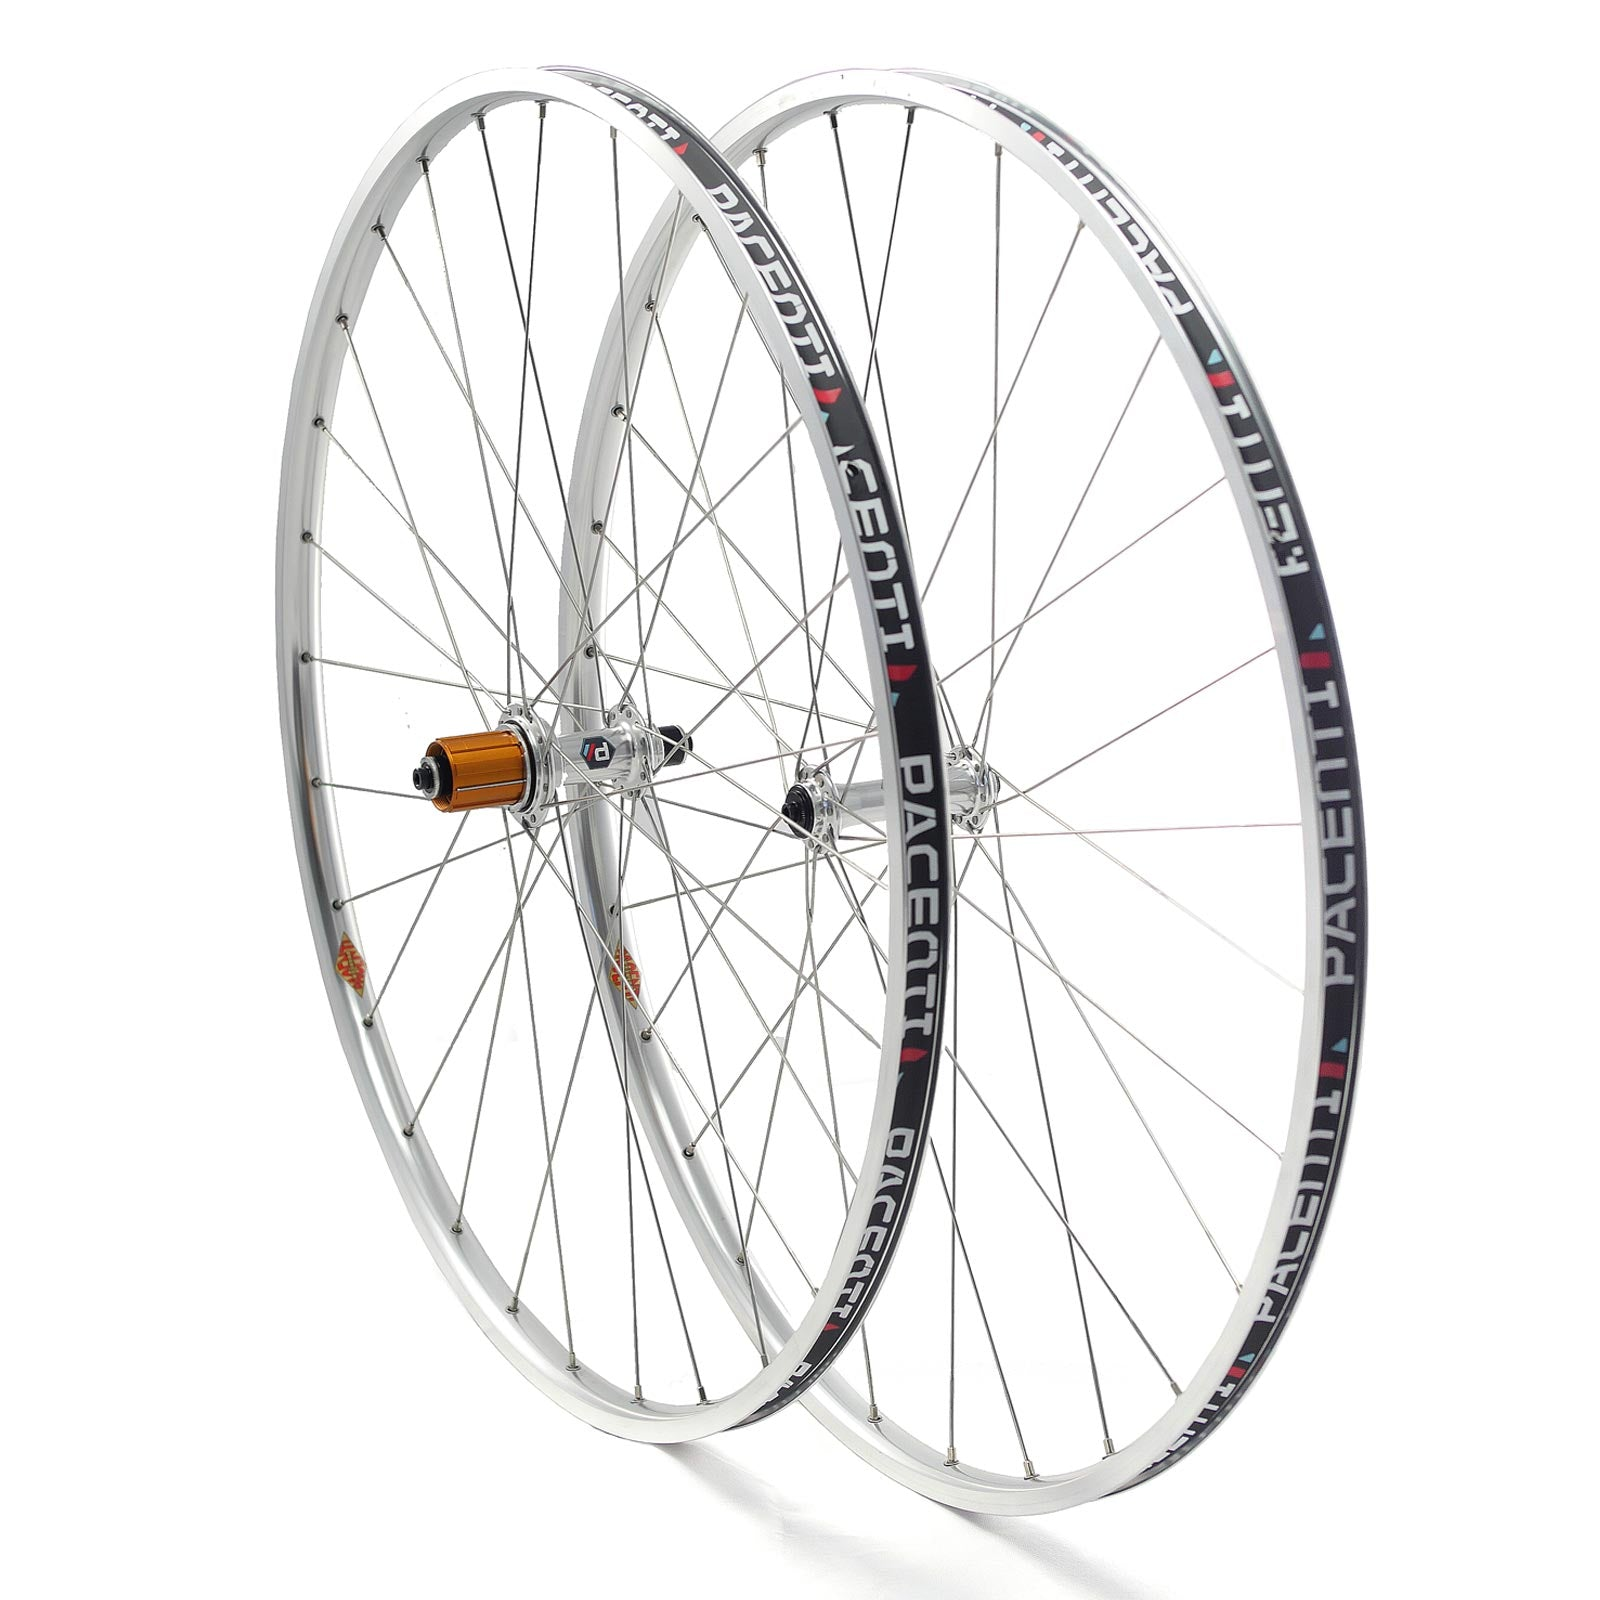 Brevet Wheelset 700c (Rim Brake)